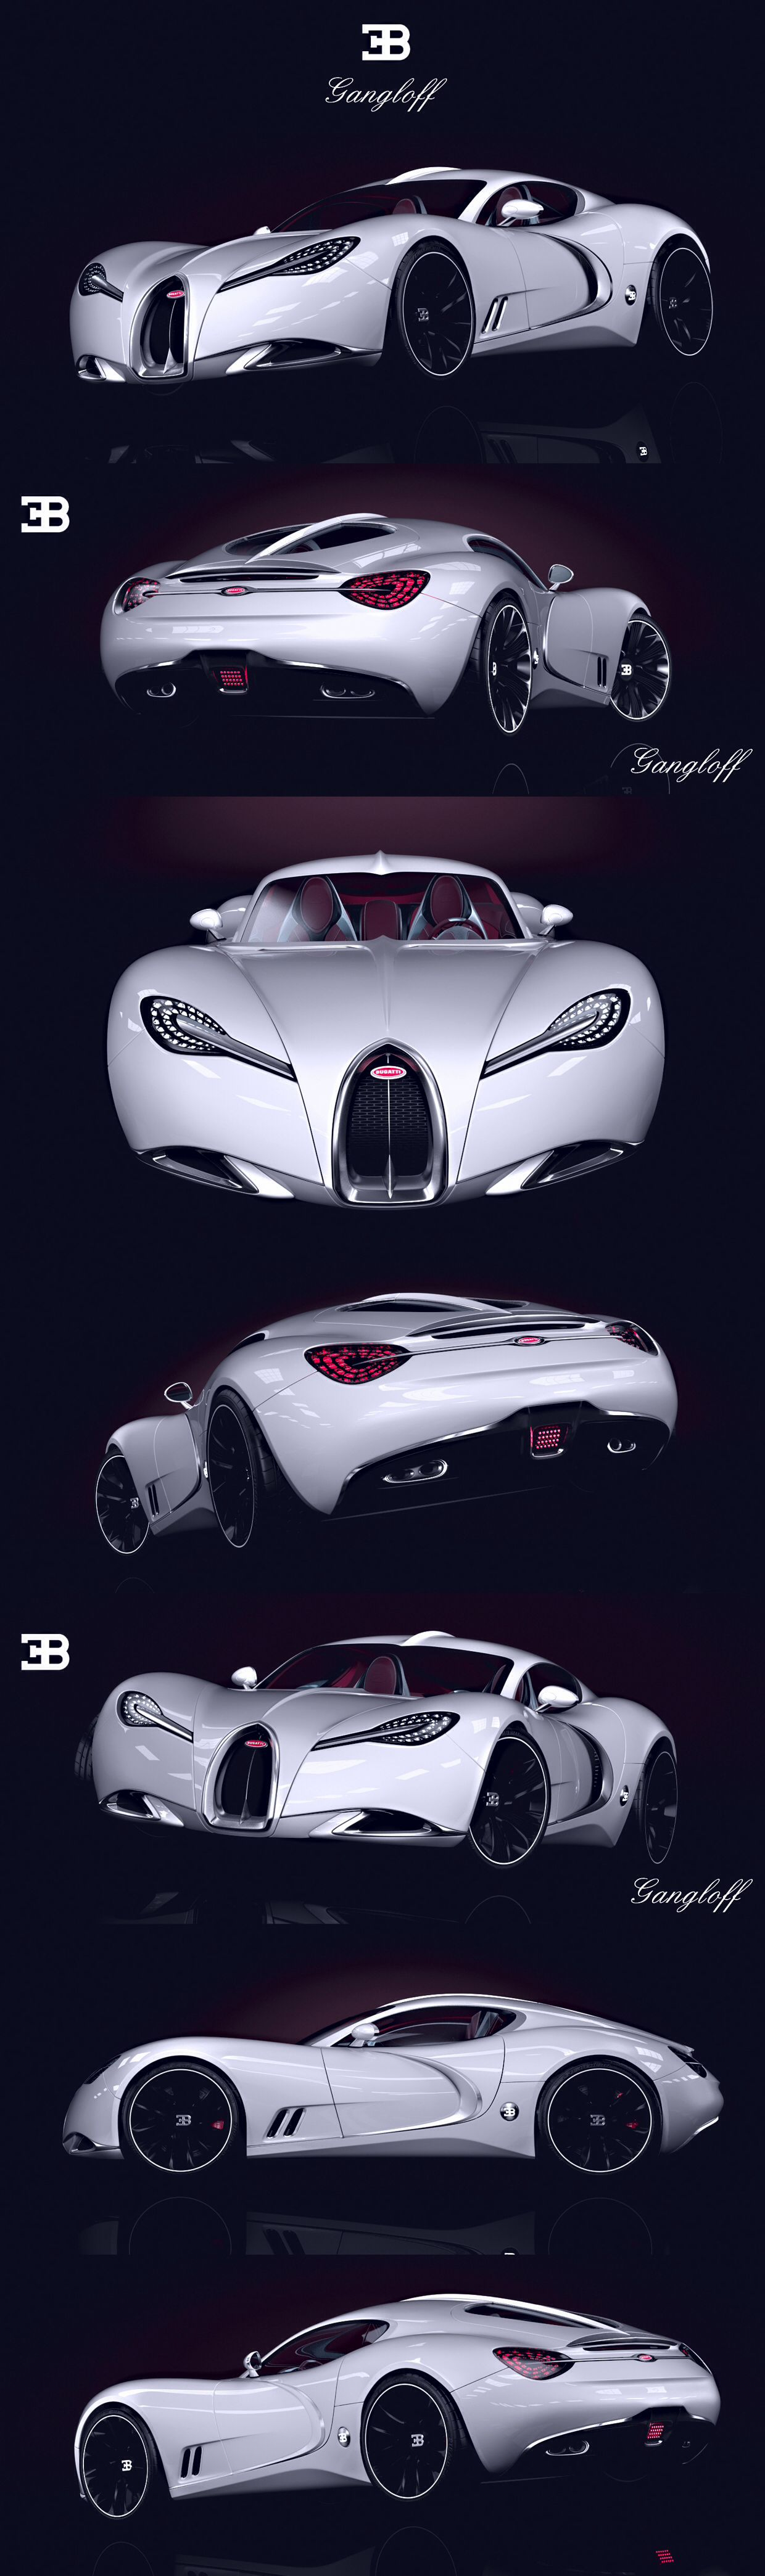 Amazing BUGATTI GANGLOFF CONCEPT CAR , INVISIUM By Paweł Czyżewski, Via Behance